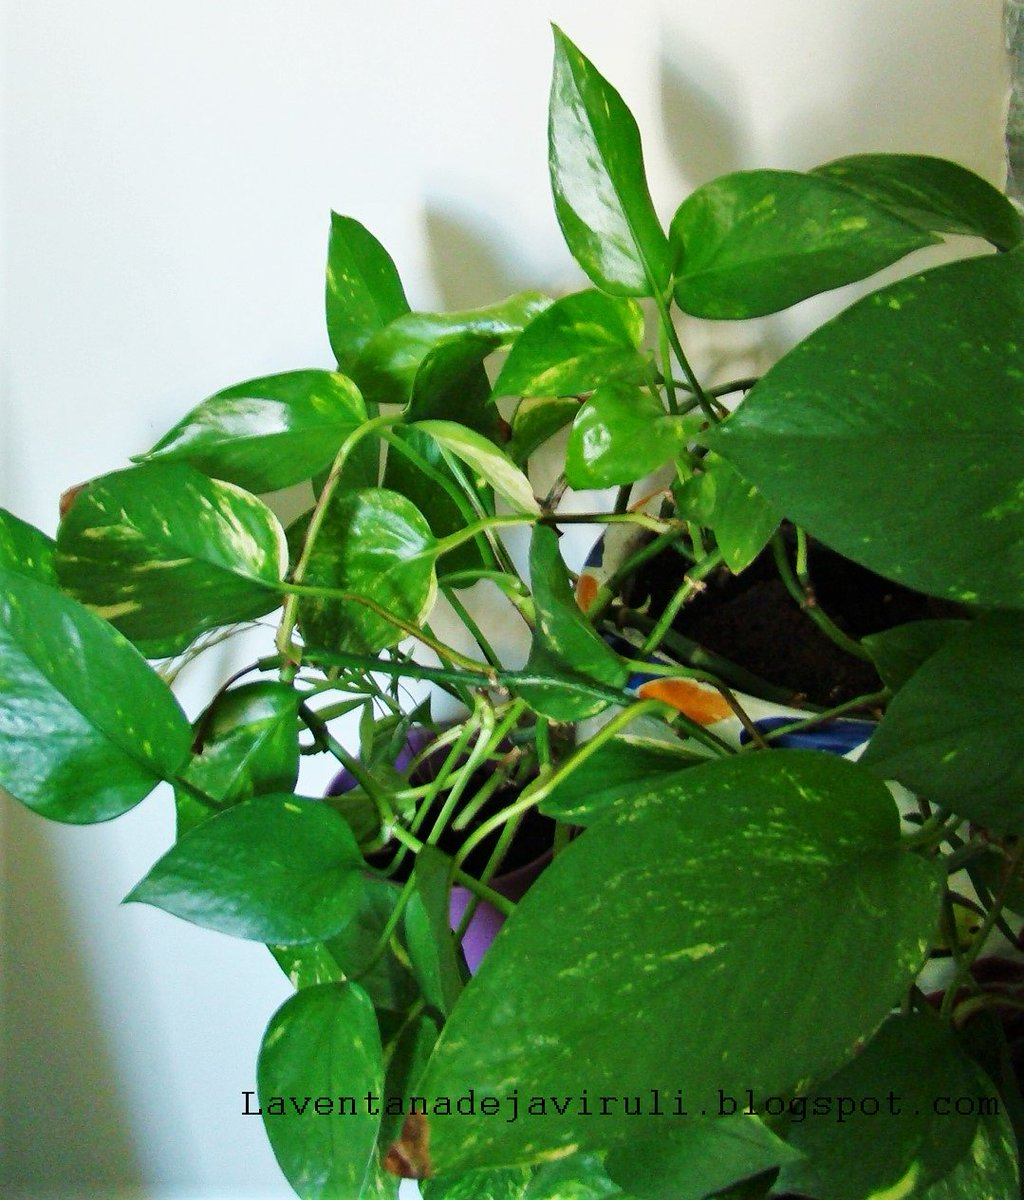 The Epipremnum Aureum All Of This More In My Blog Https T Co Fp5cexb3ka Poto Photos Plantas Interior Deco Cbznaxey6x